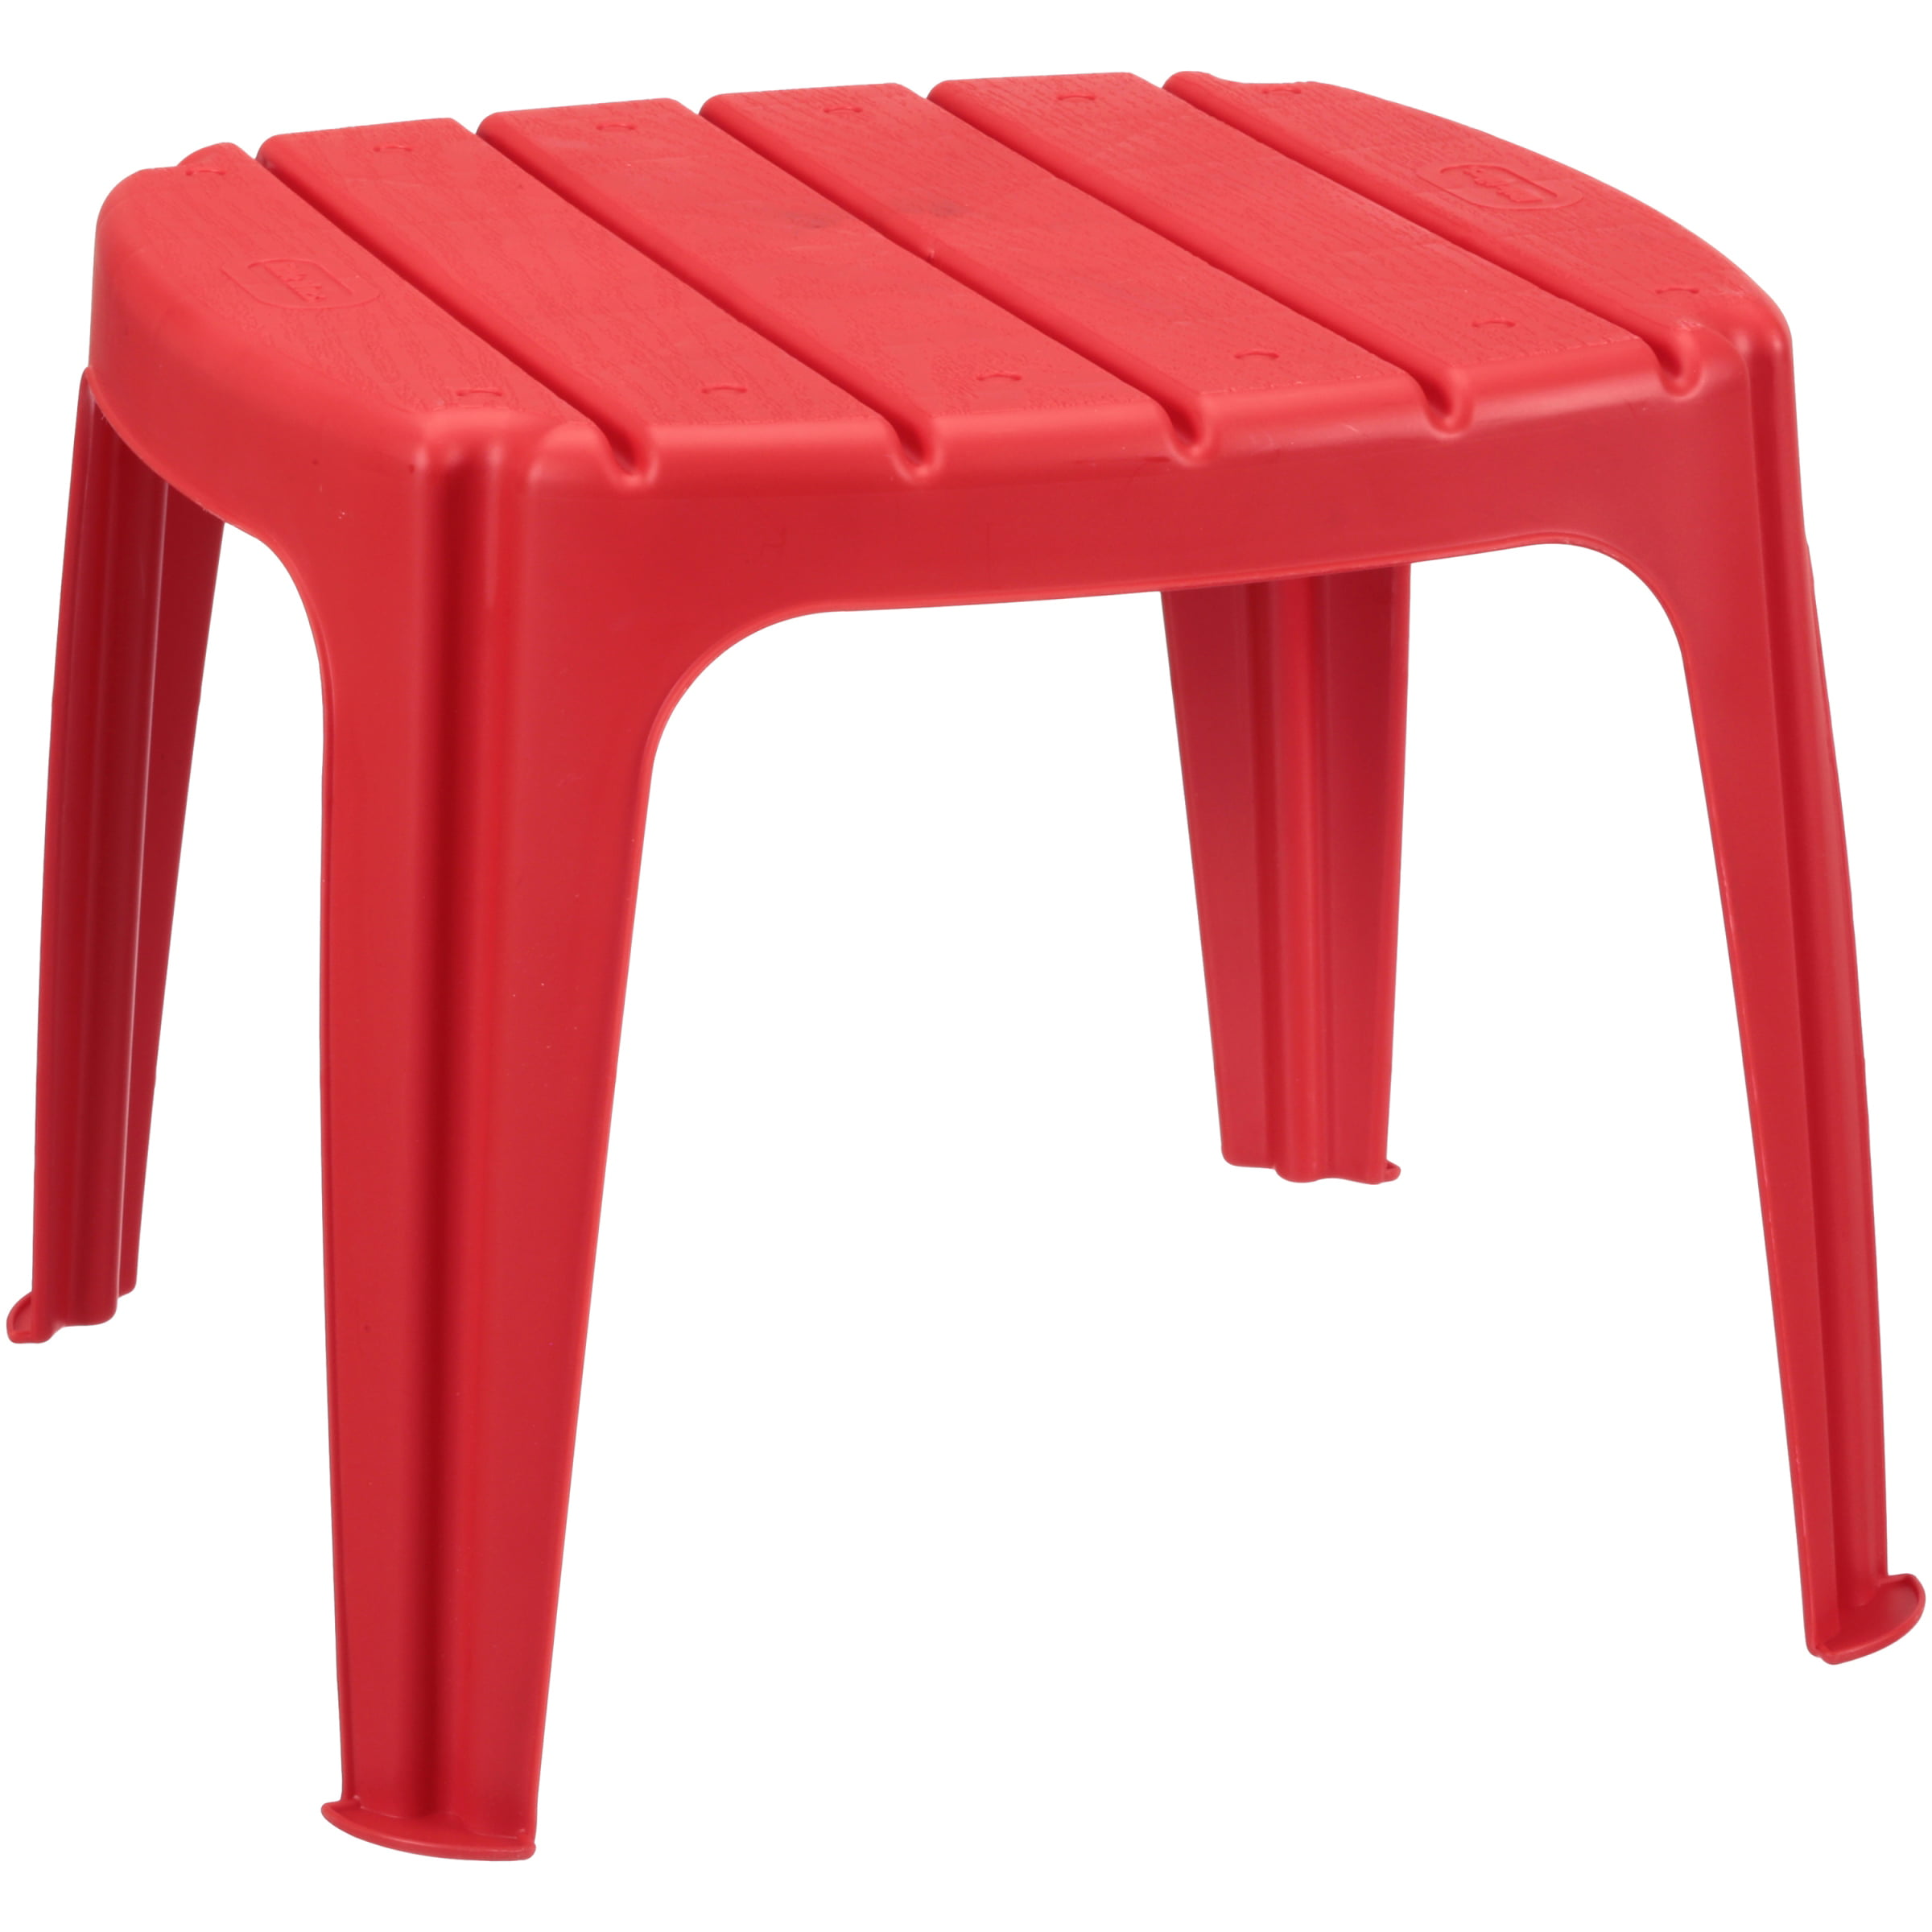 Little Tikes Garden Table, Multiple Colors by MGA Entertainment